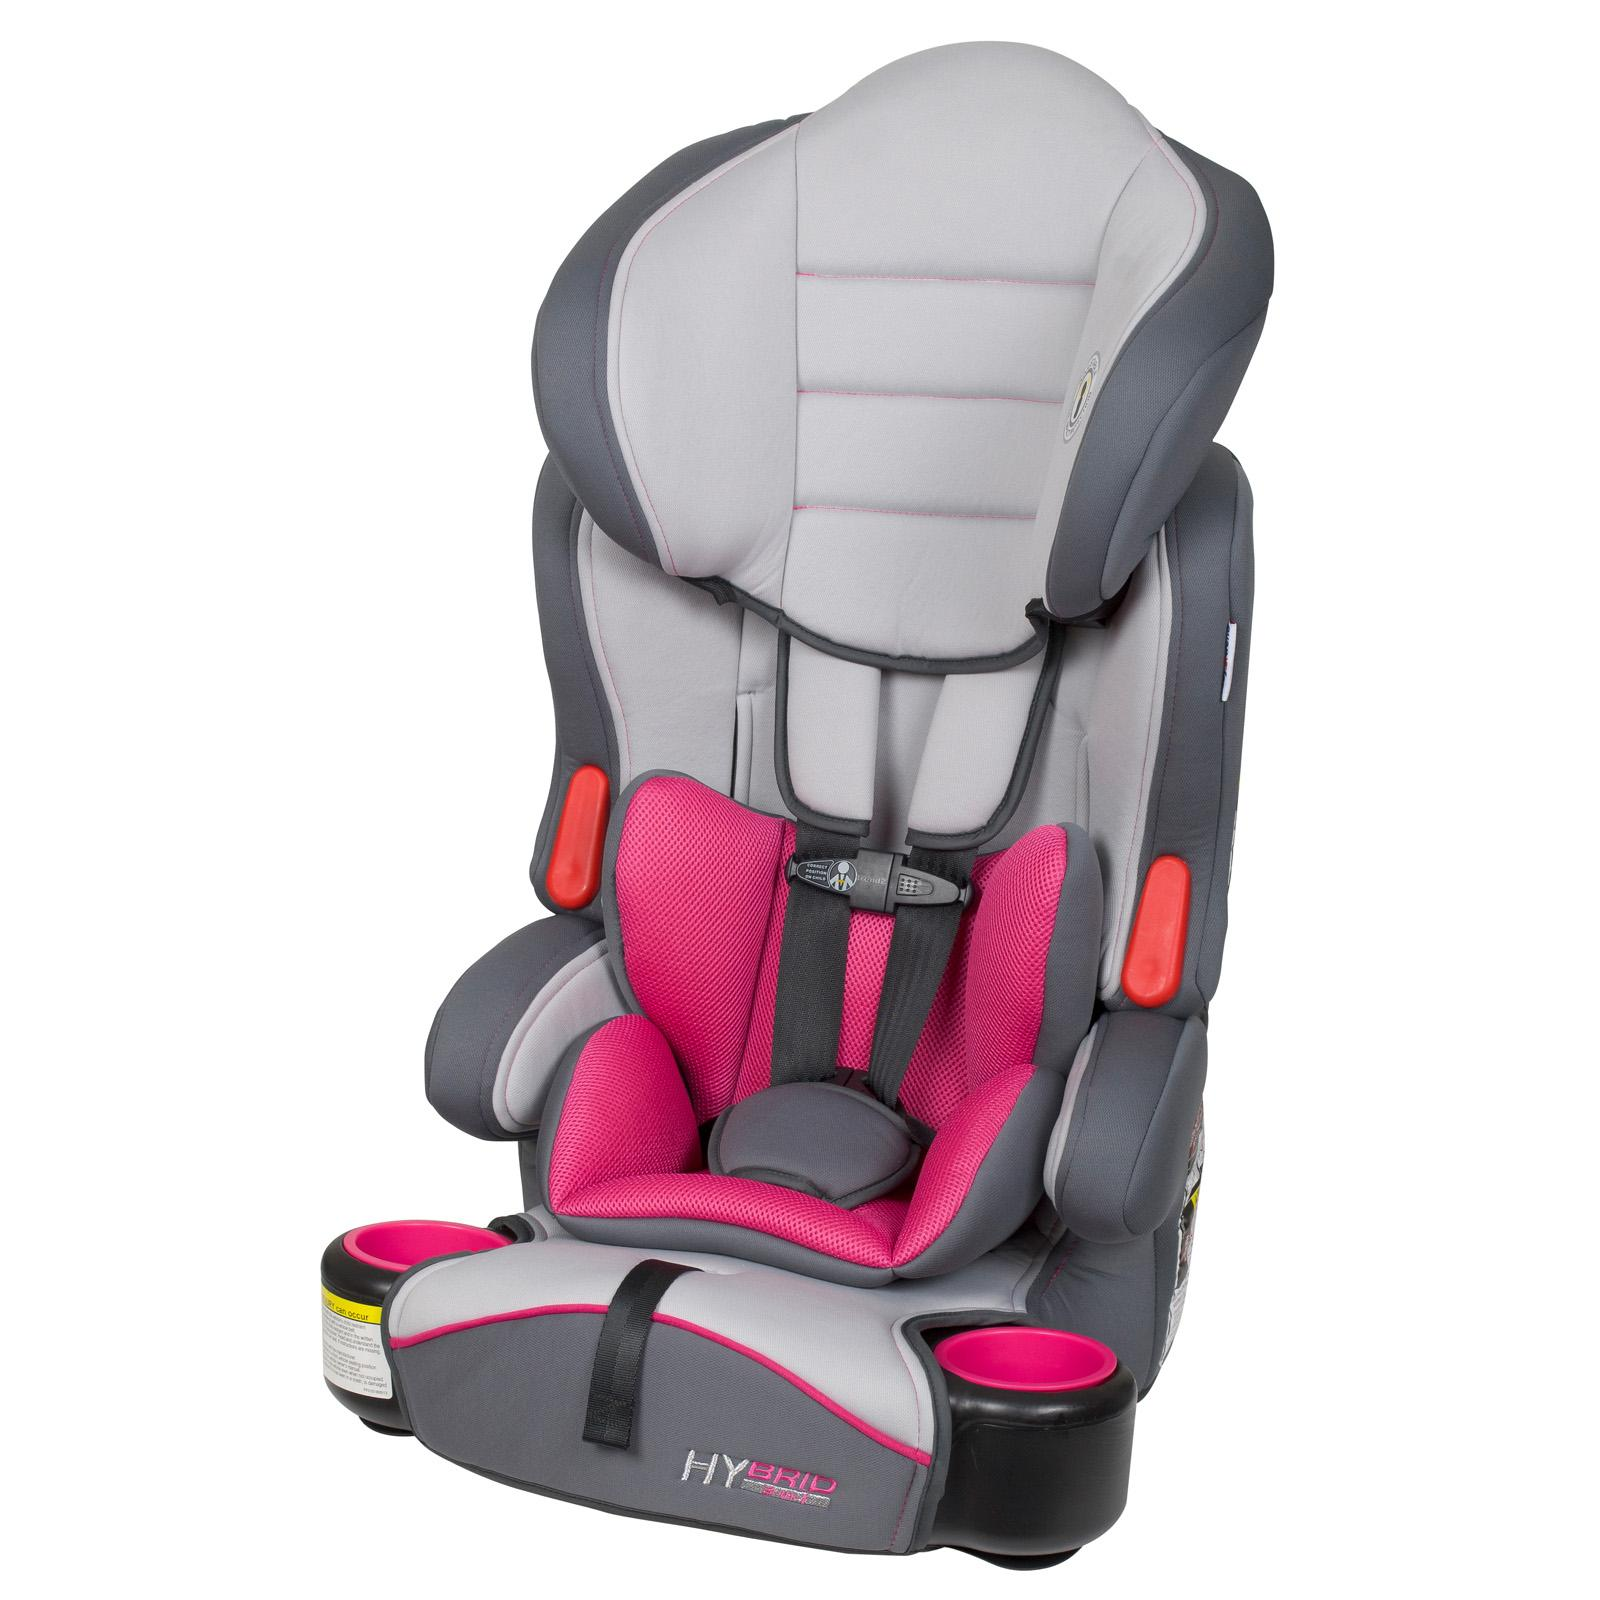 Baby Trend Hybrid 3 In 1 Car Seat